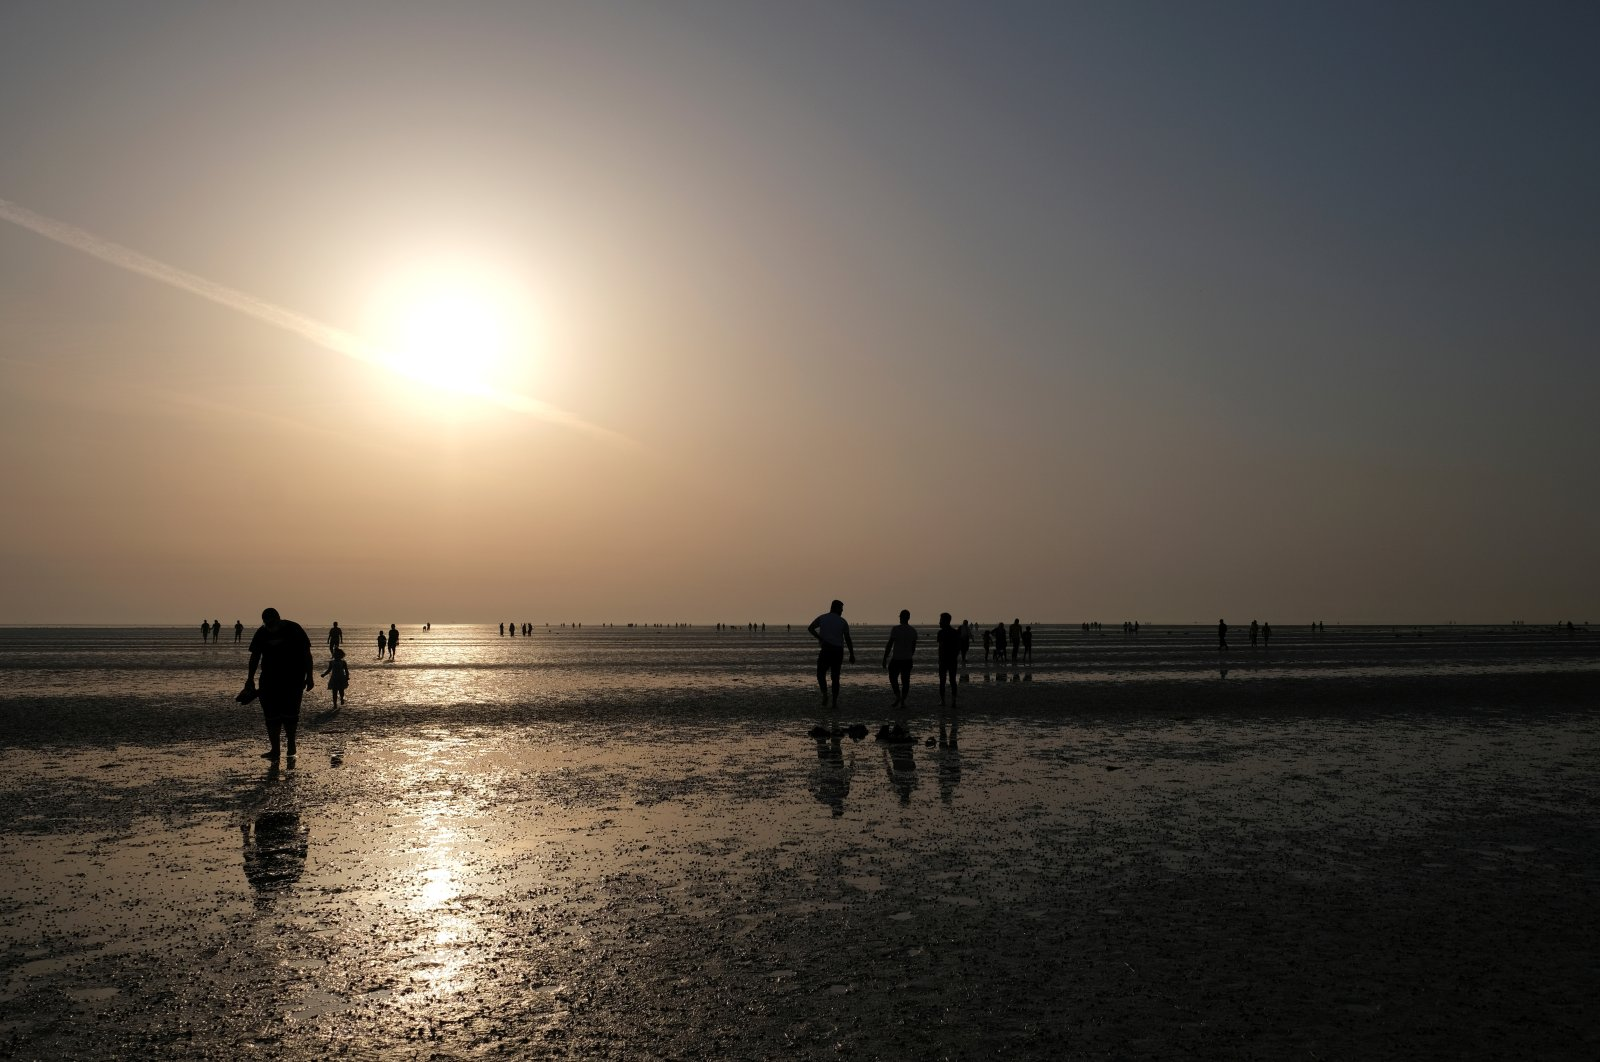 Residents enjoy the sunrise after starting their fast during the holy month of Ramadan at Ramlet al-Baida beach on Tarout Island, Saudi Arabia, April 23, 2021. (Reuters Photo)